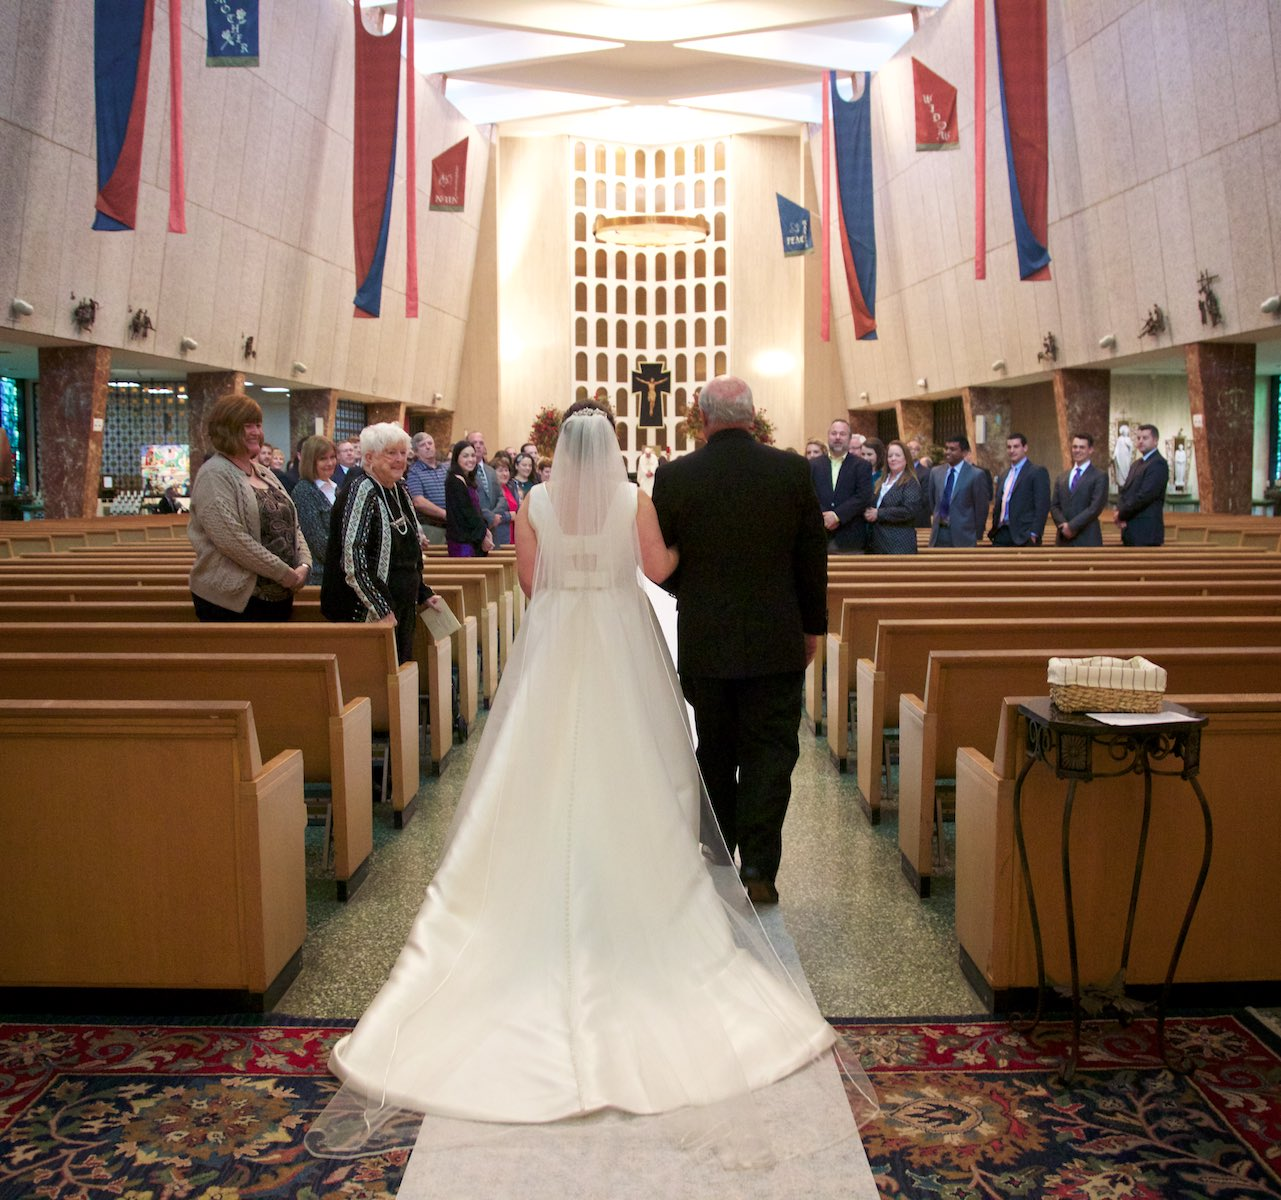 Elizabeth and her father walks down the aisle, St. Rita of Cascia Shrine Chapel in Chicago. St. Rita High School took over from a seminary preparatory institution, so the school has a larger and more beautiful chapel than expected. Wedding photography by Steve & Tiffany Warmowski